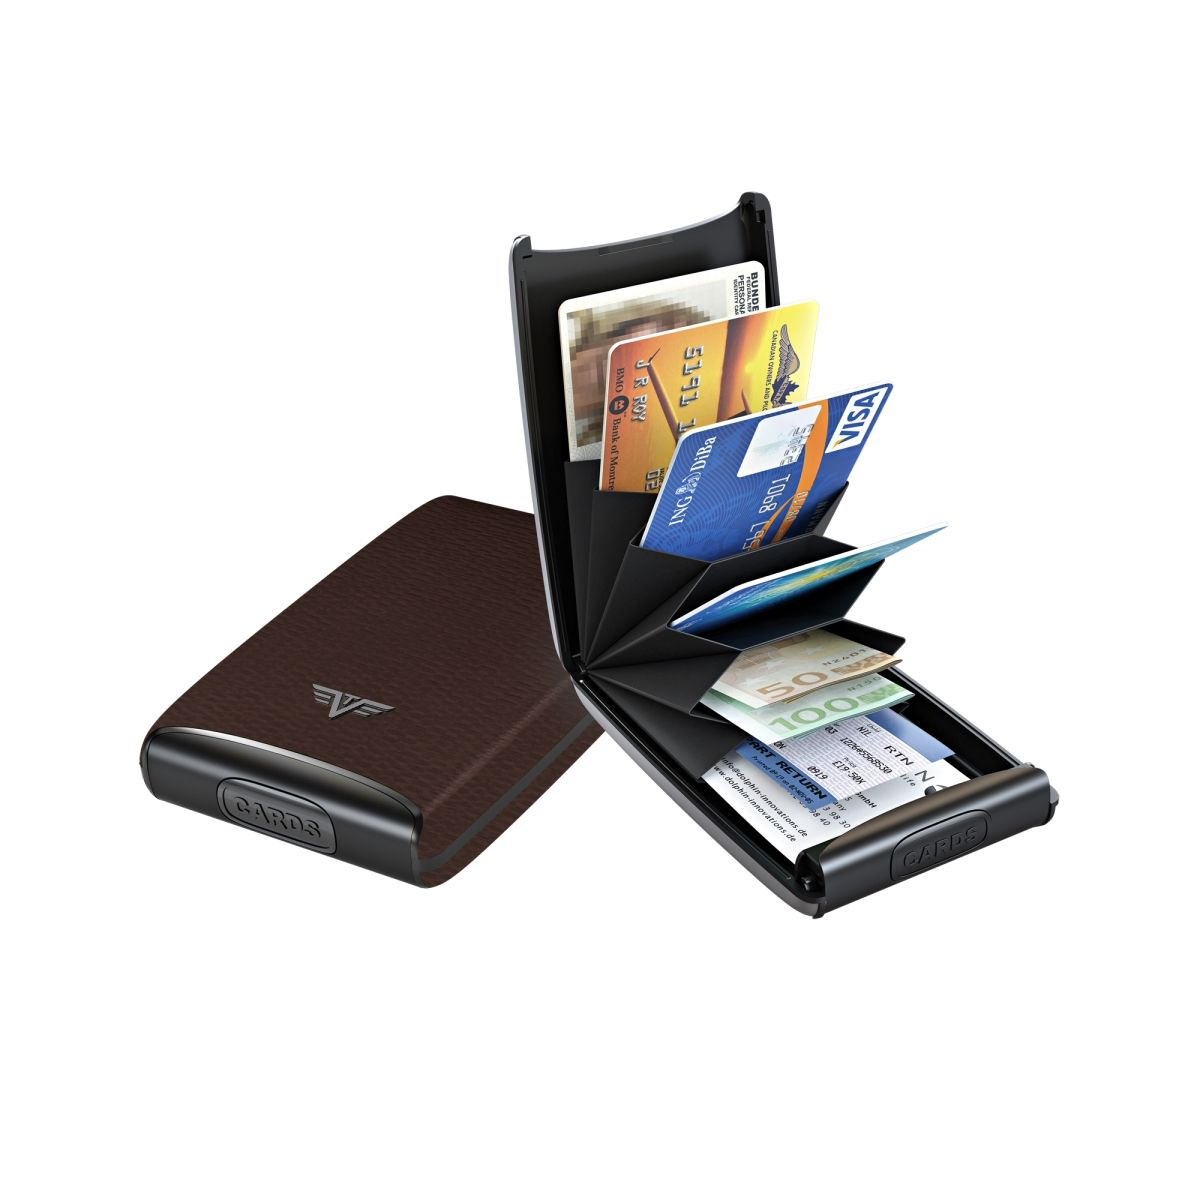 TRU VIRTU Aluminum Card Case Fun Leather Line - Dark Tabacco